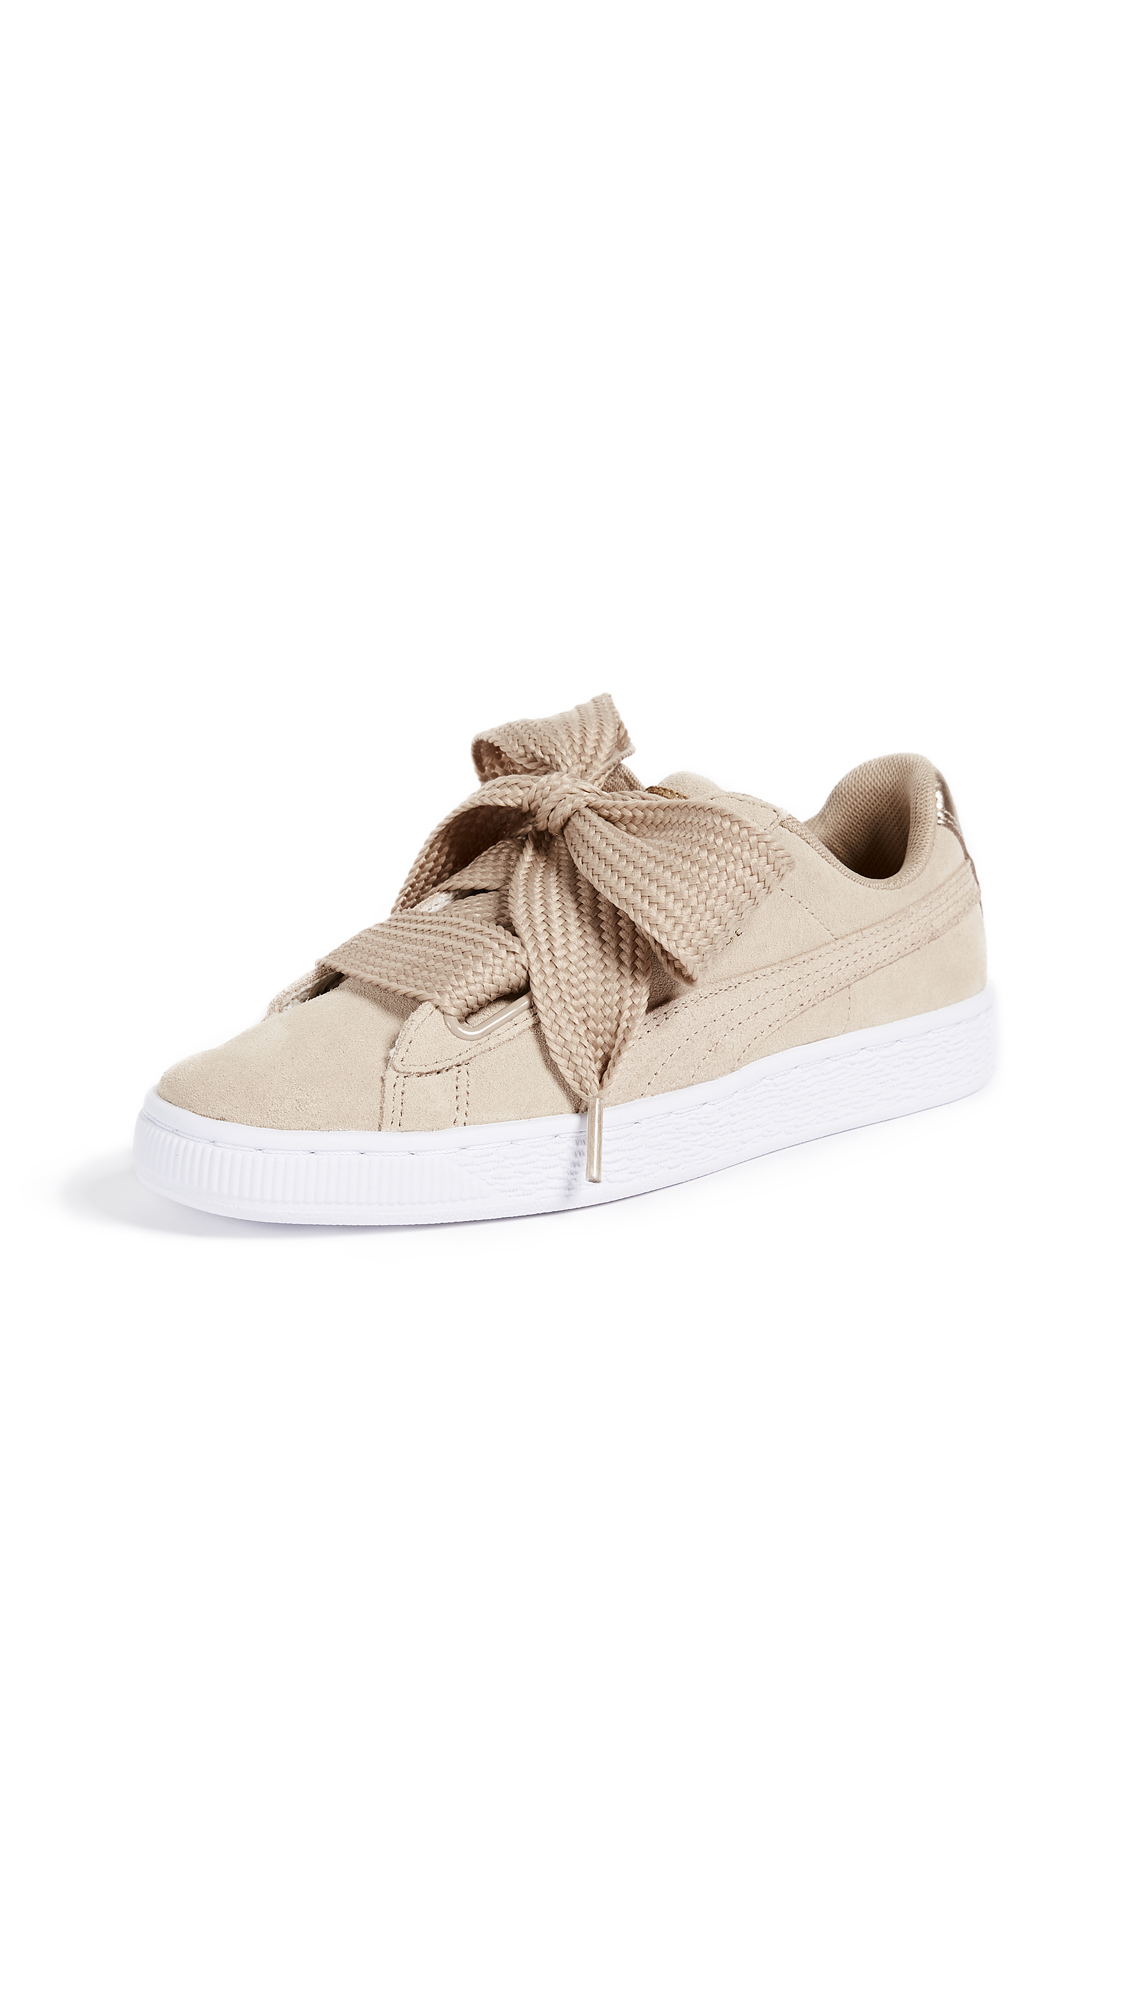 PUMA Basket Heart Safari Sneakers - Safari/Safari